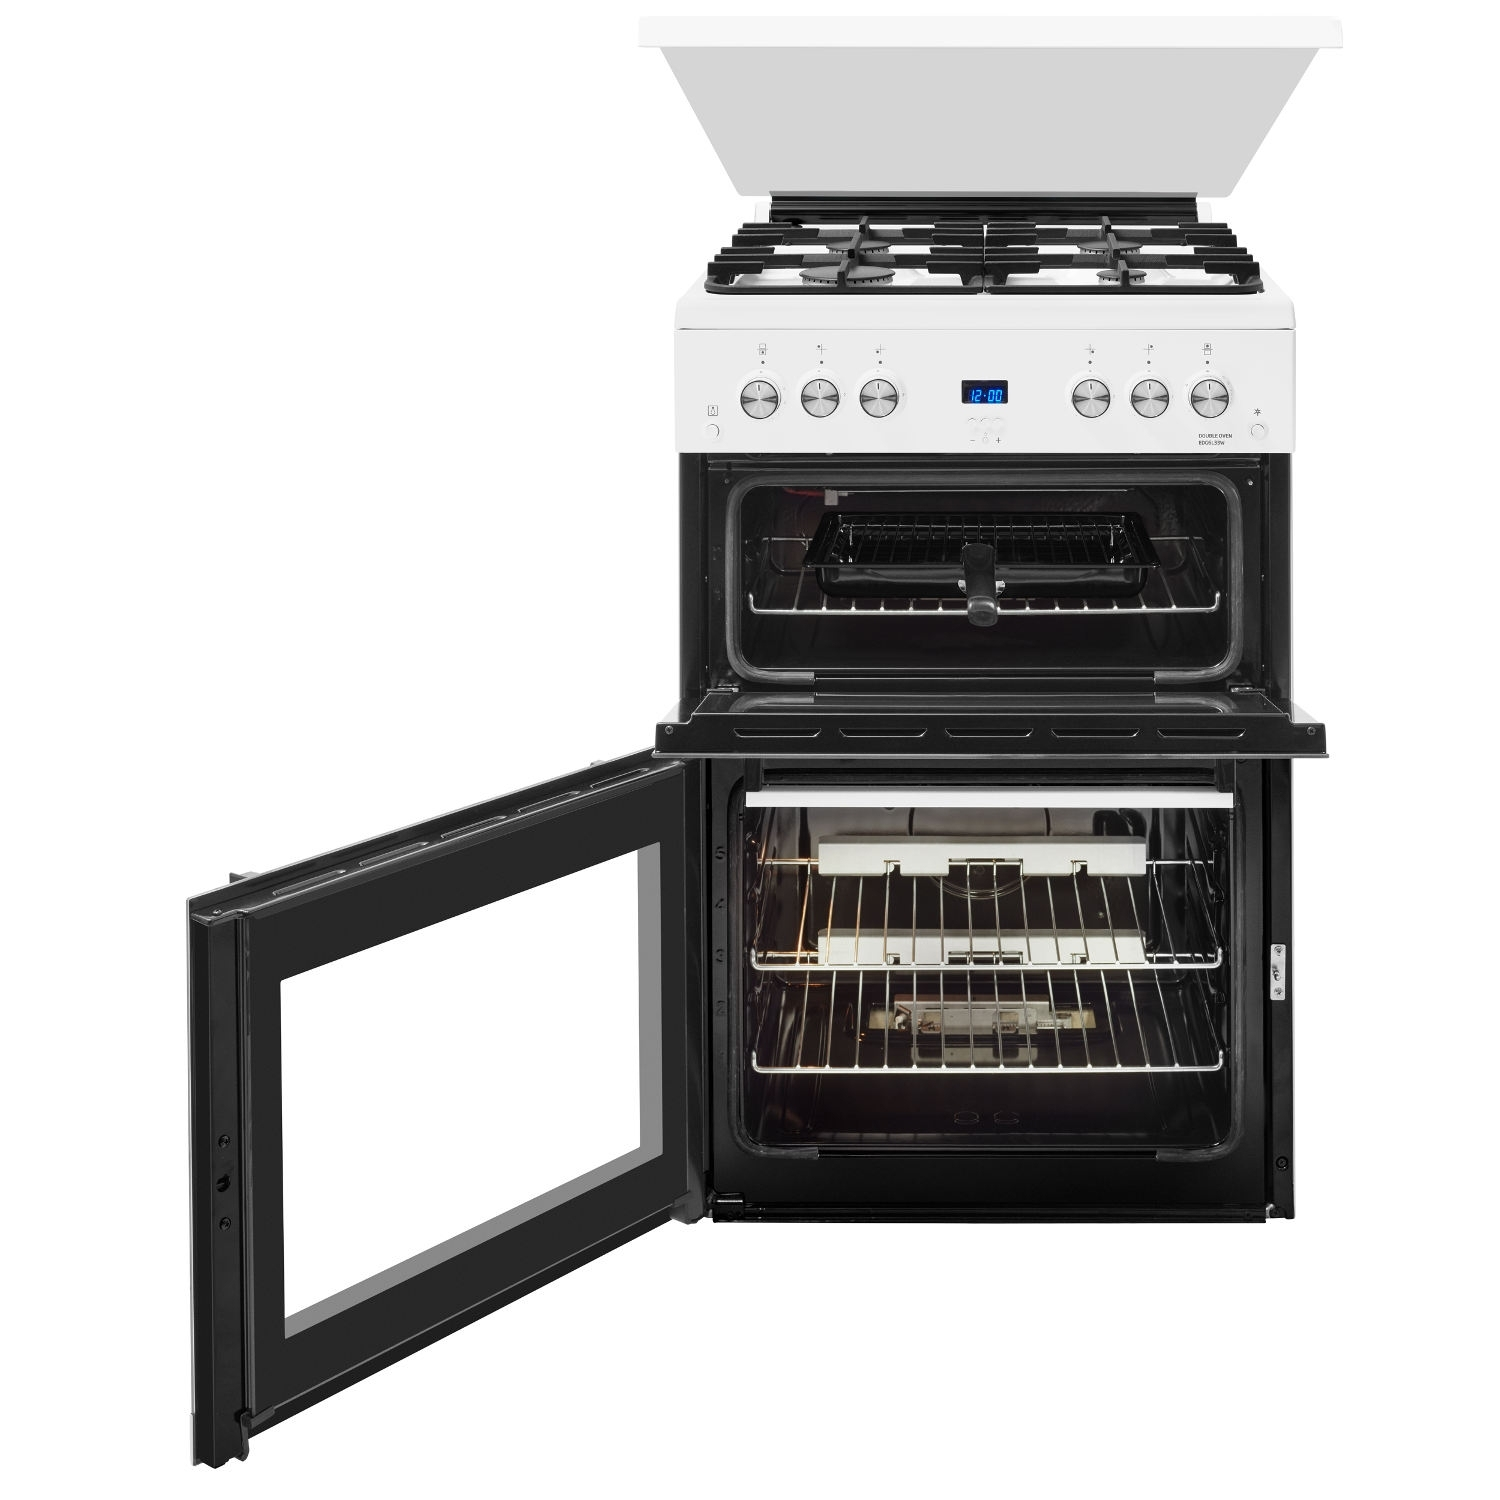 Beko 60cm Double Oven Gas Cooker with Glass Lid - White - 2